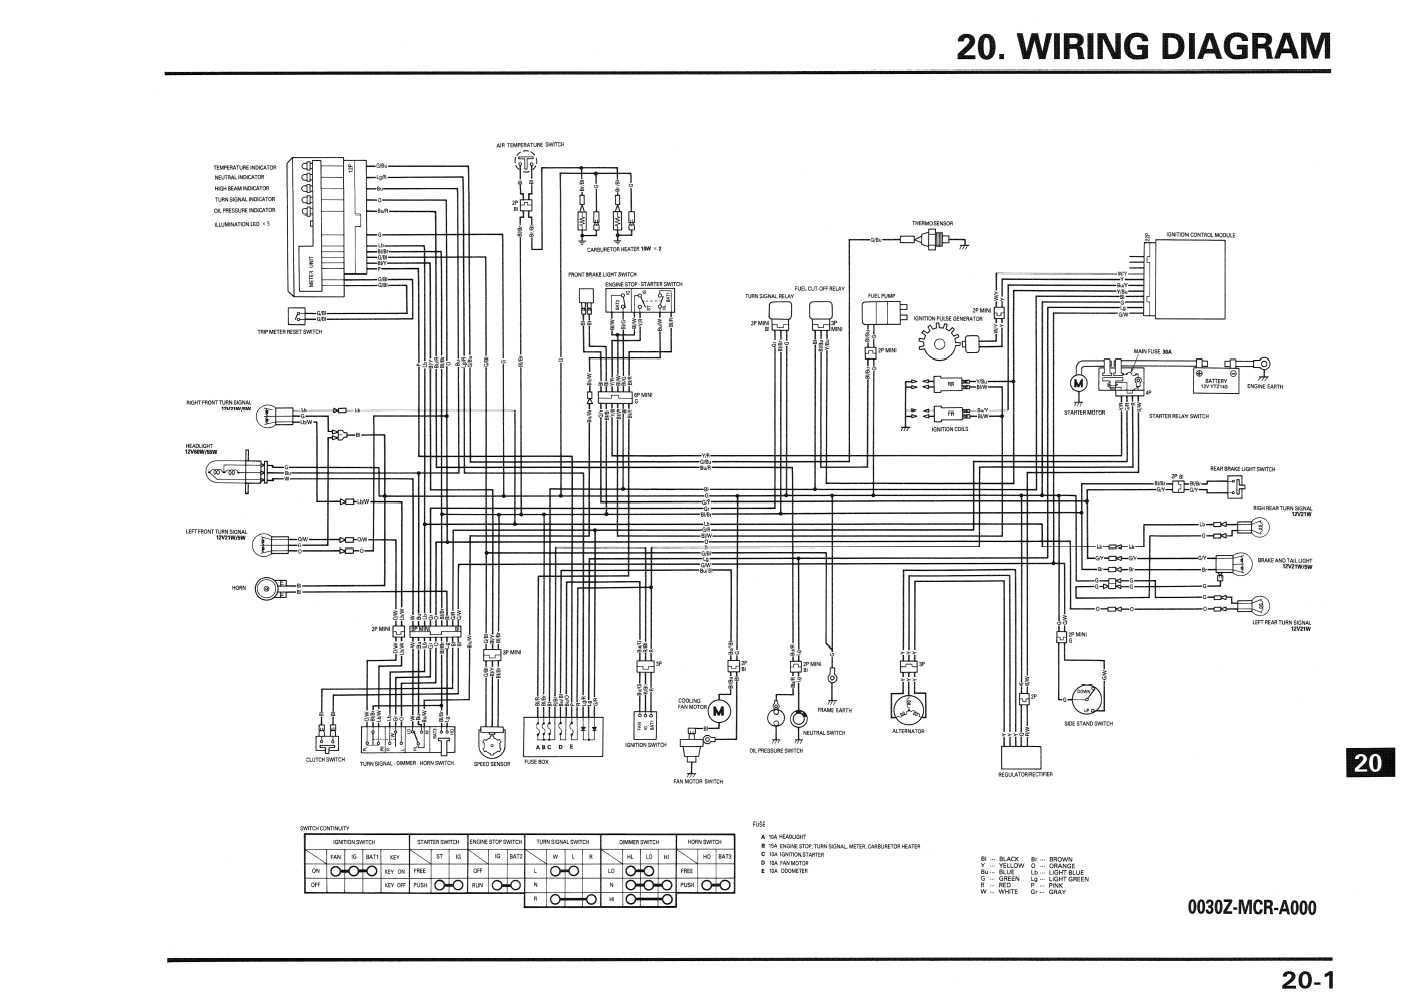 61mcr02_348_1 honda vt750dc shop manual wiring diagram 1983 honda shadow 750 wiring diagram at suagrazia.org